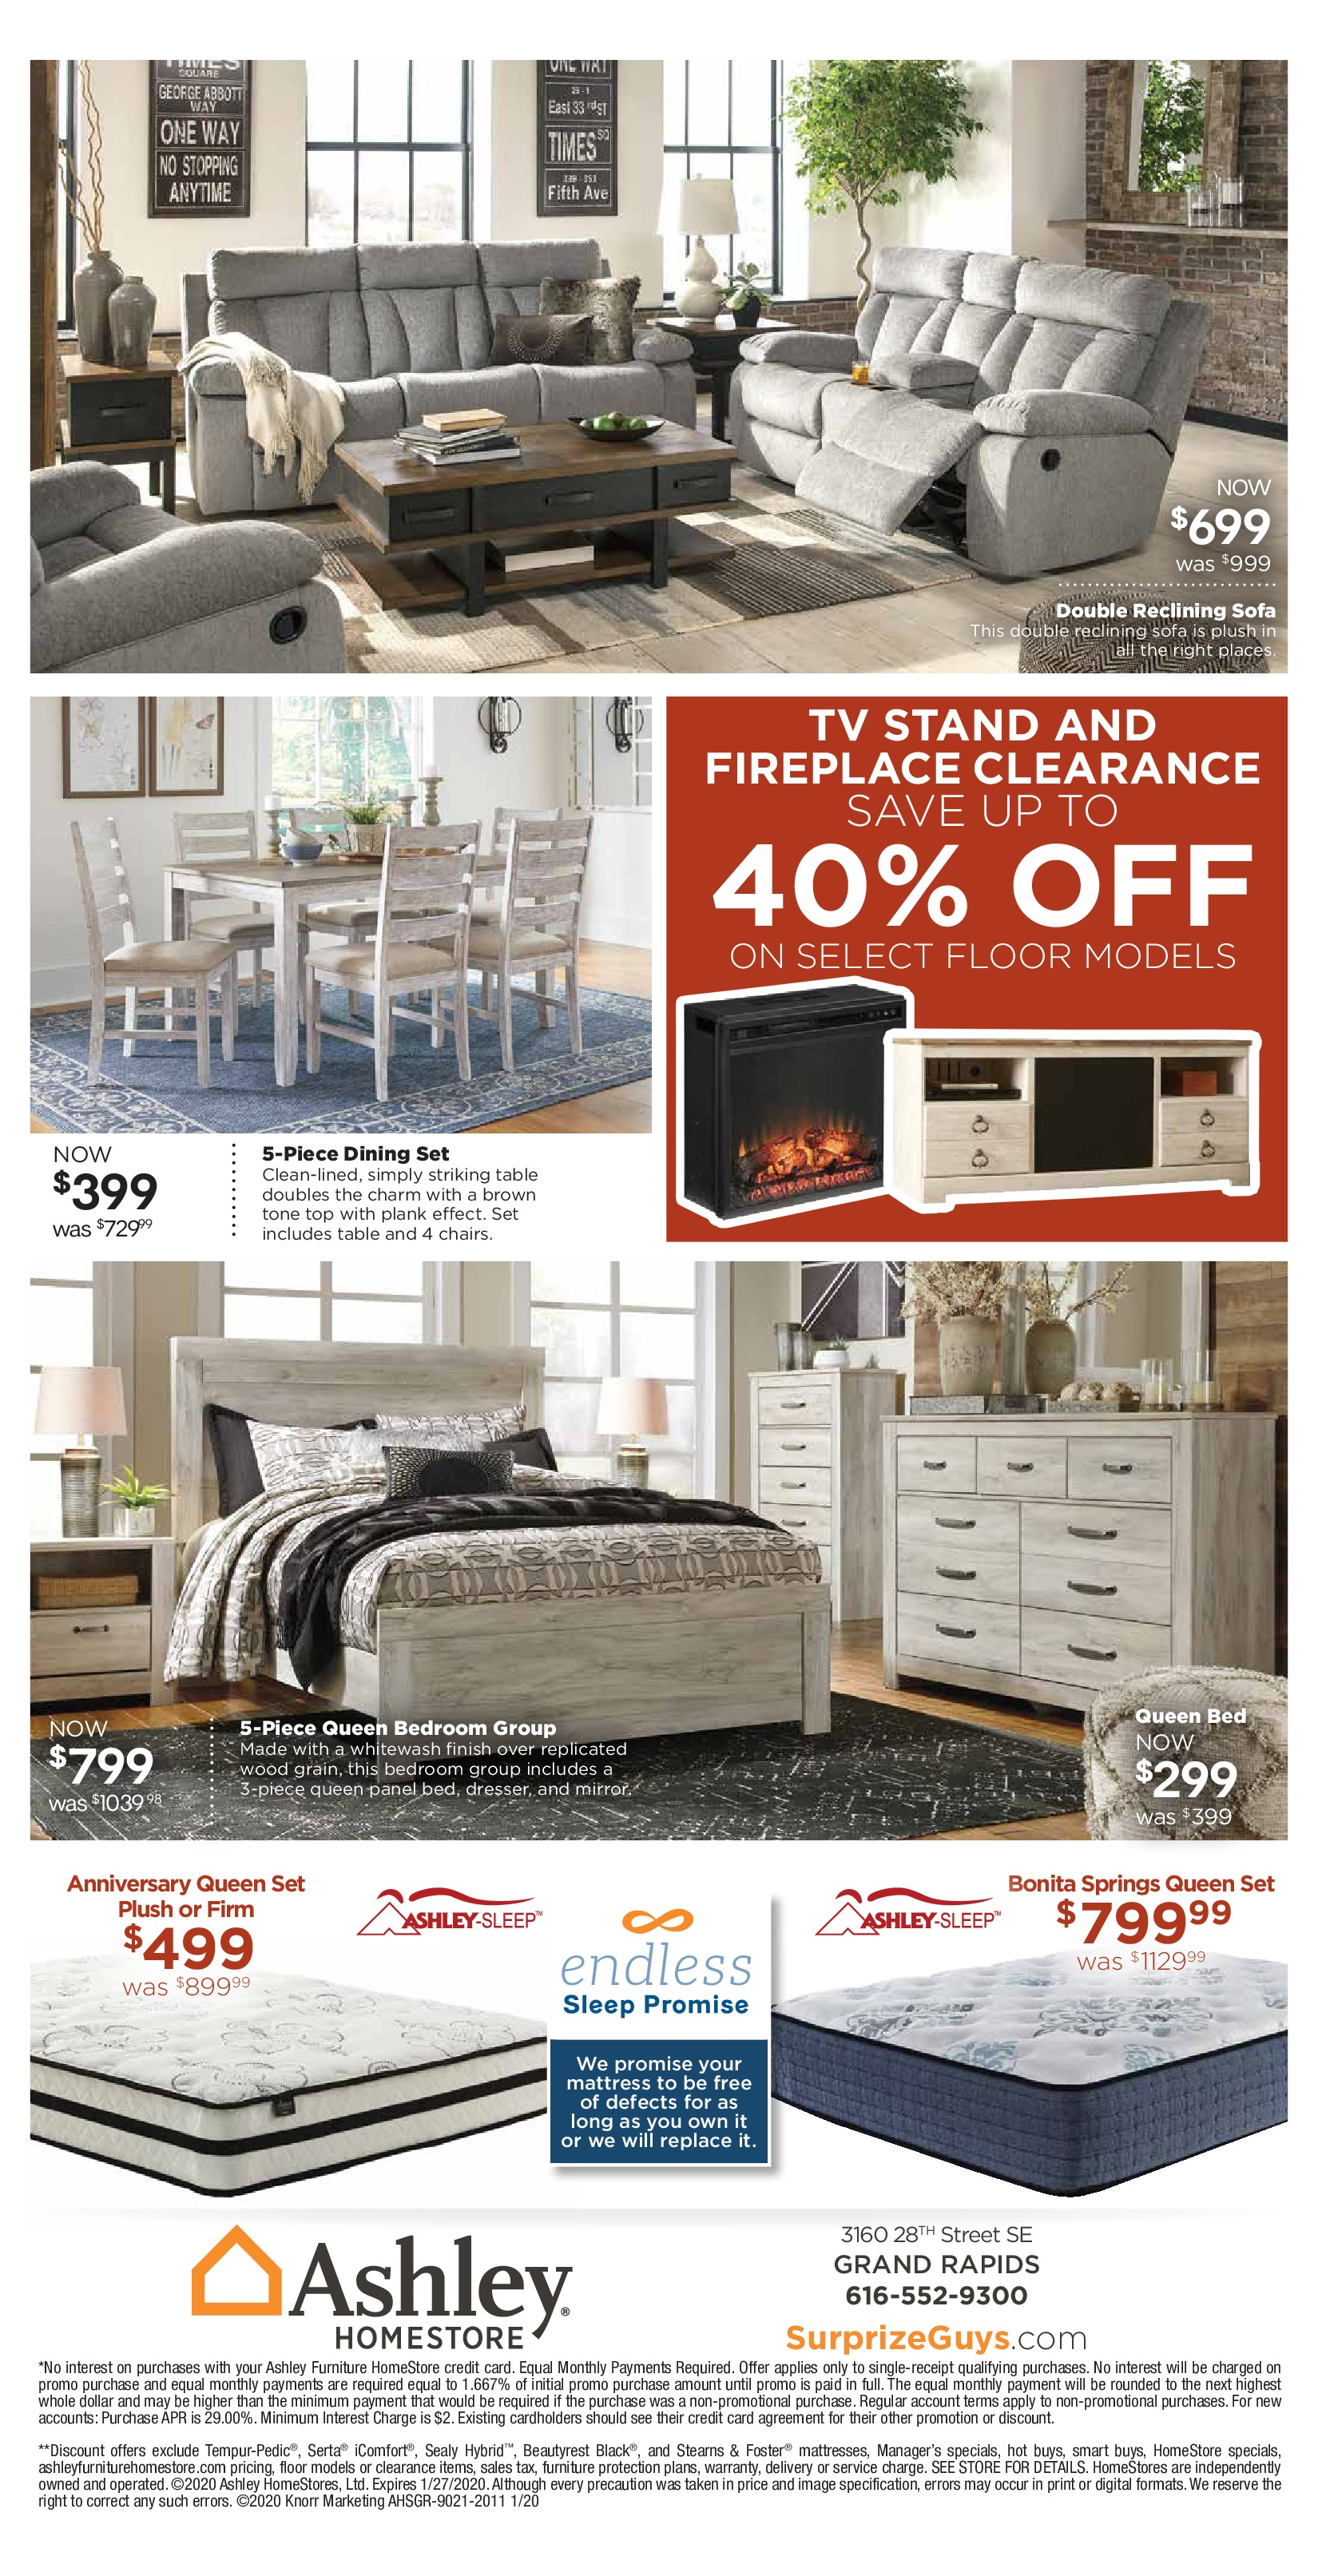 AHSGR-9021-2011-InventoryClearance-Specials Page